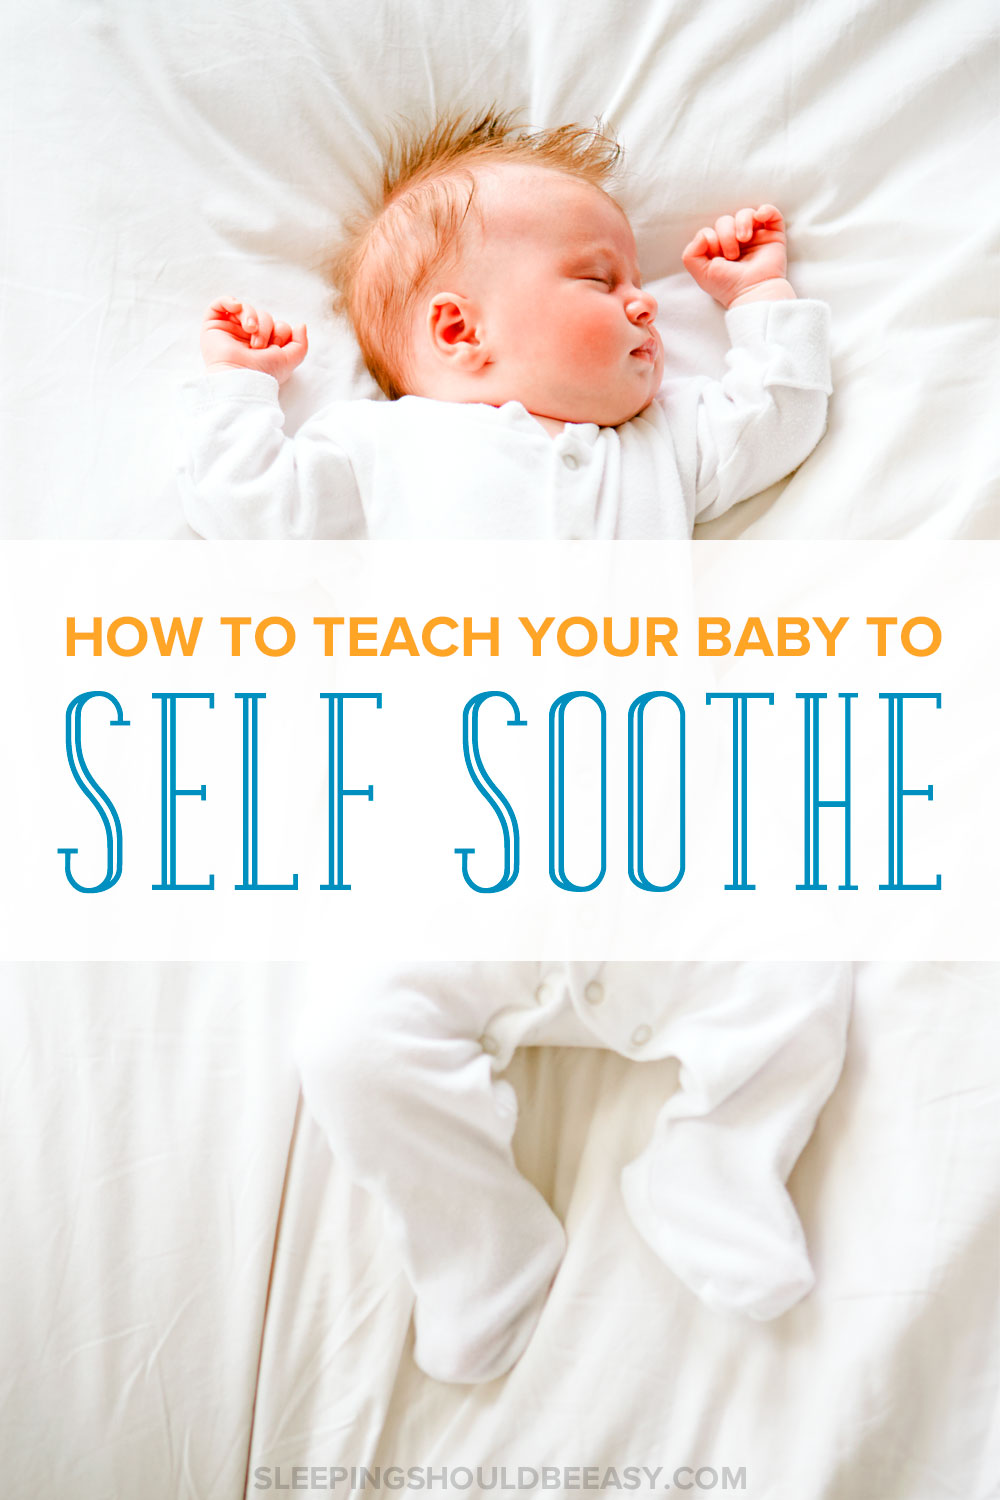 What do you do when your baby doesn't fall asleep on his own? Learn how to start teaching your baby to self soothe to sleep and for naps without crying.